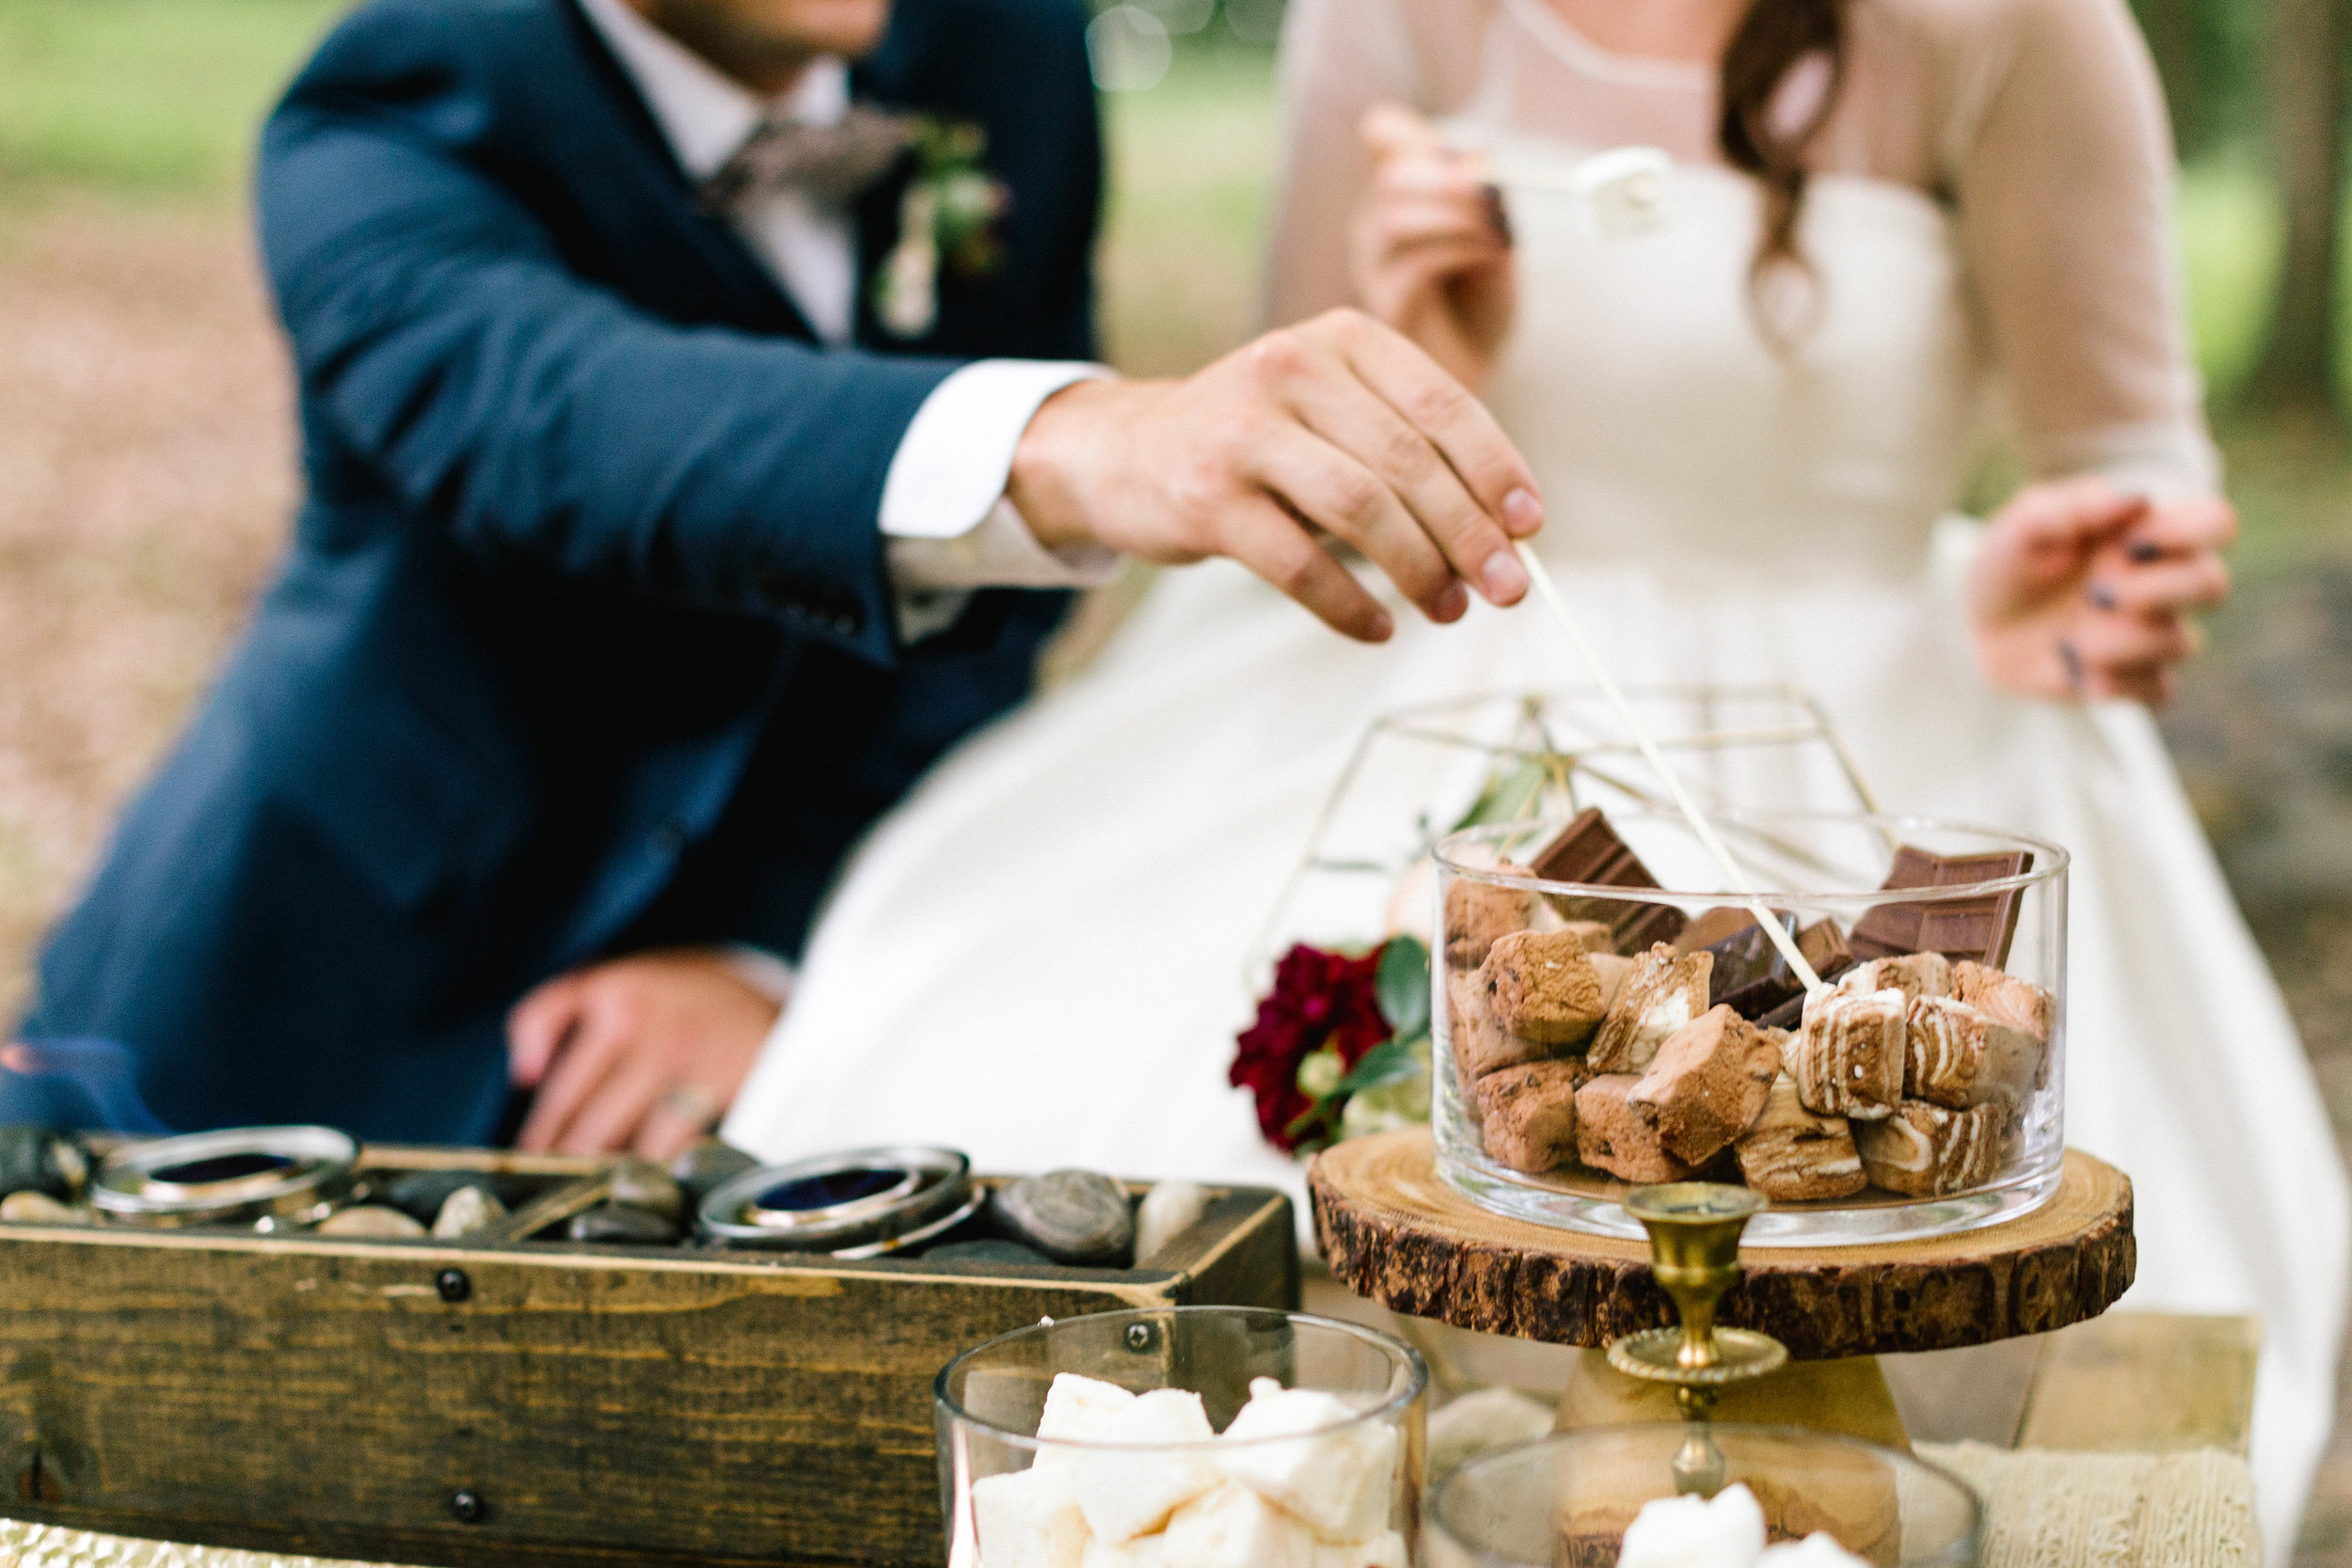 Allison_Hopperstad_Photography_Acowsay_Wedding_Smores.JPG